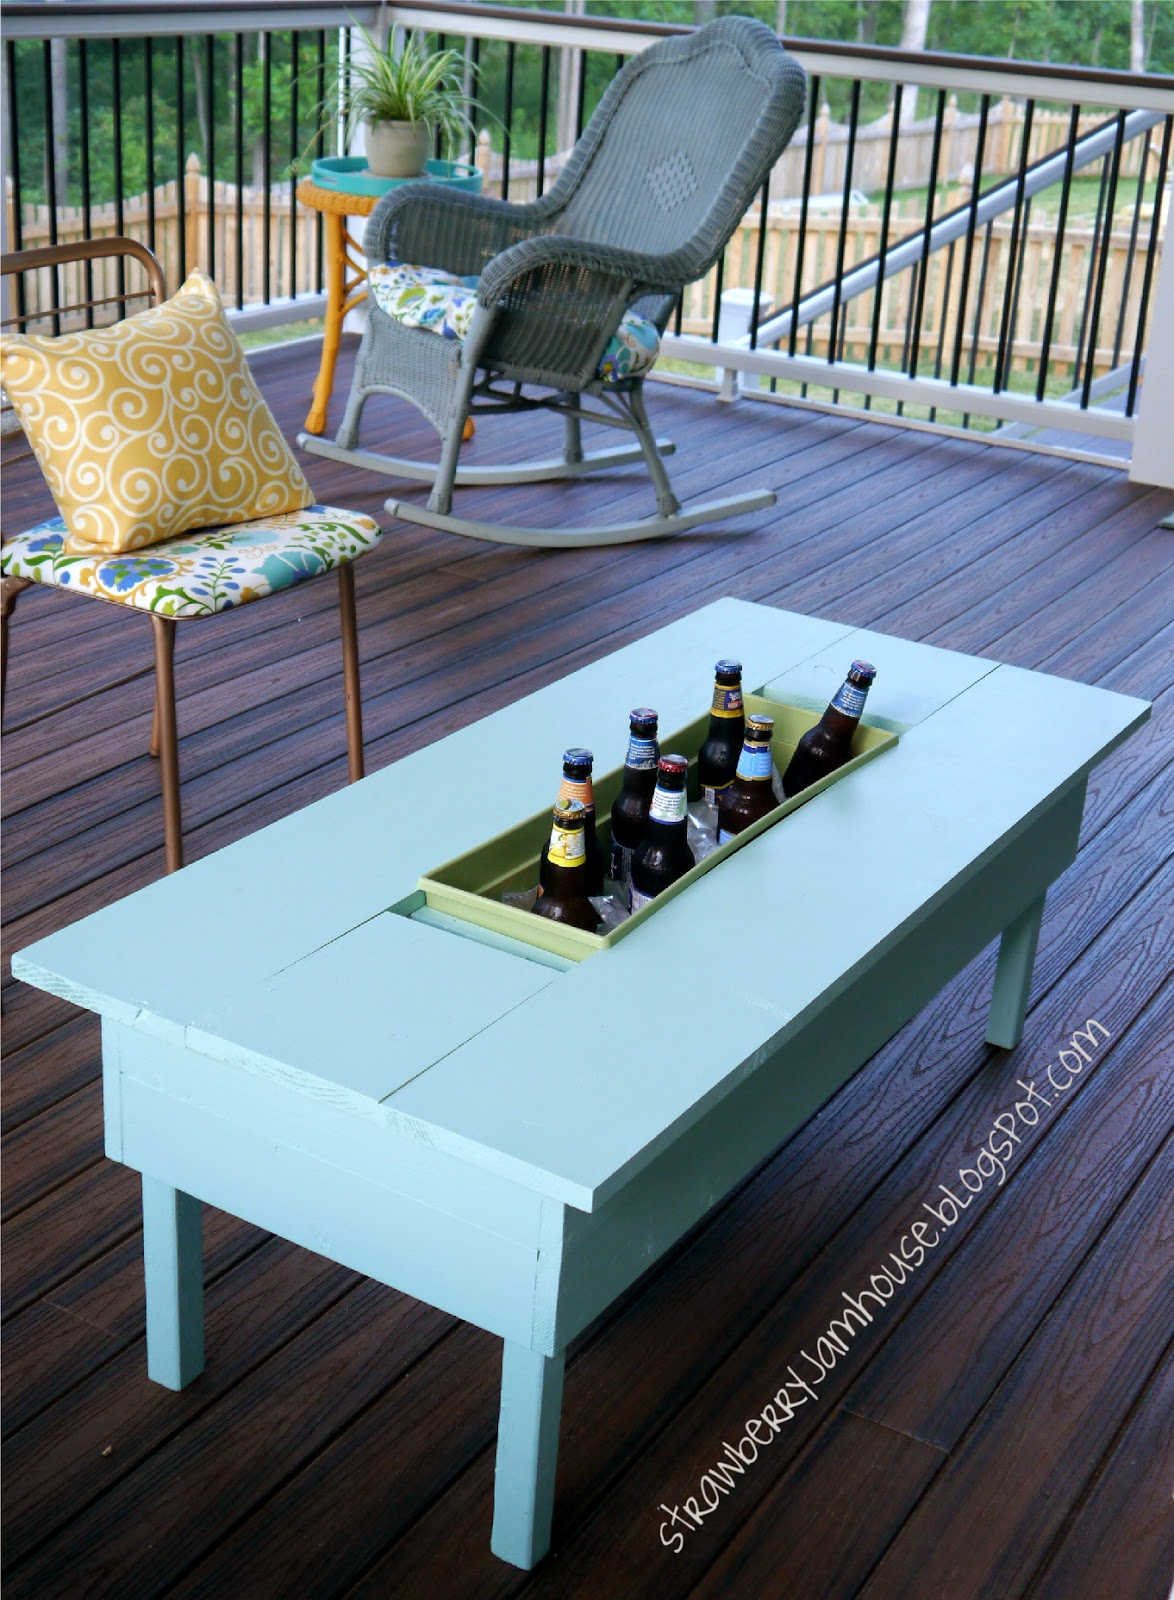 Strawberry Jam House Porch Coffee Table With Built In Cooler